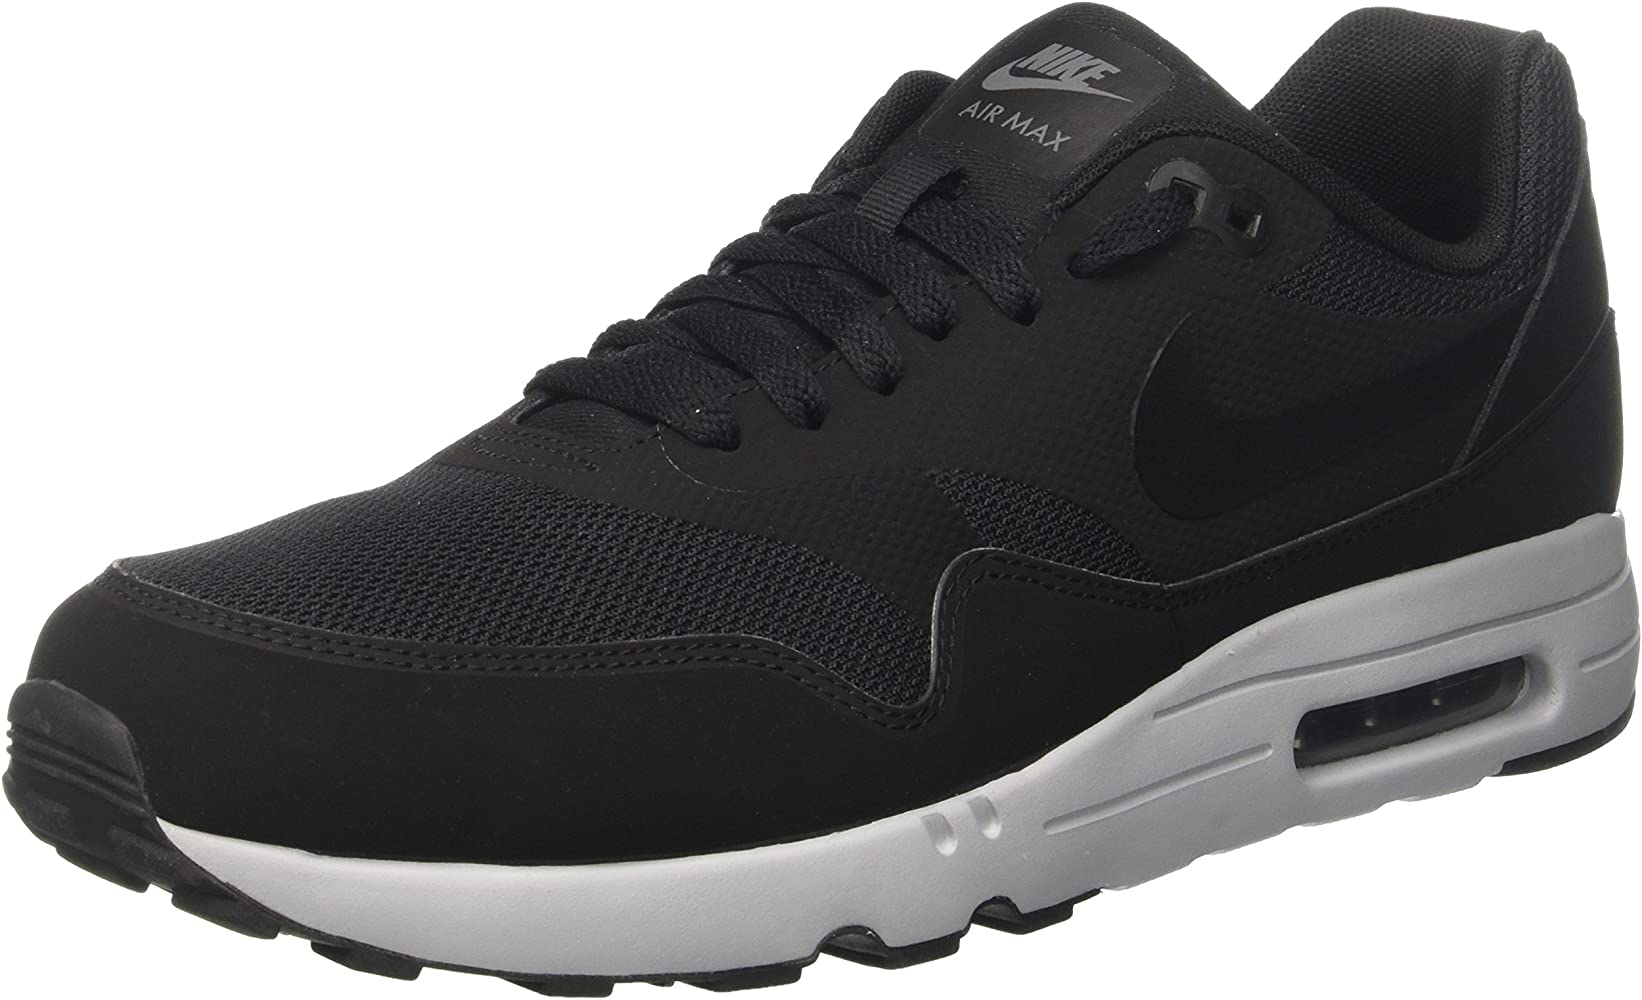 Men's Air Max 1 Ultra 2.0 Essential Running Shoes